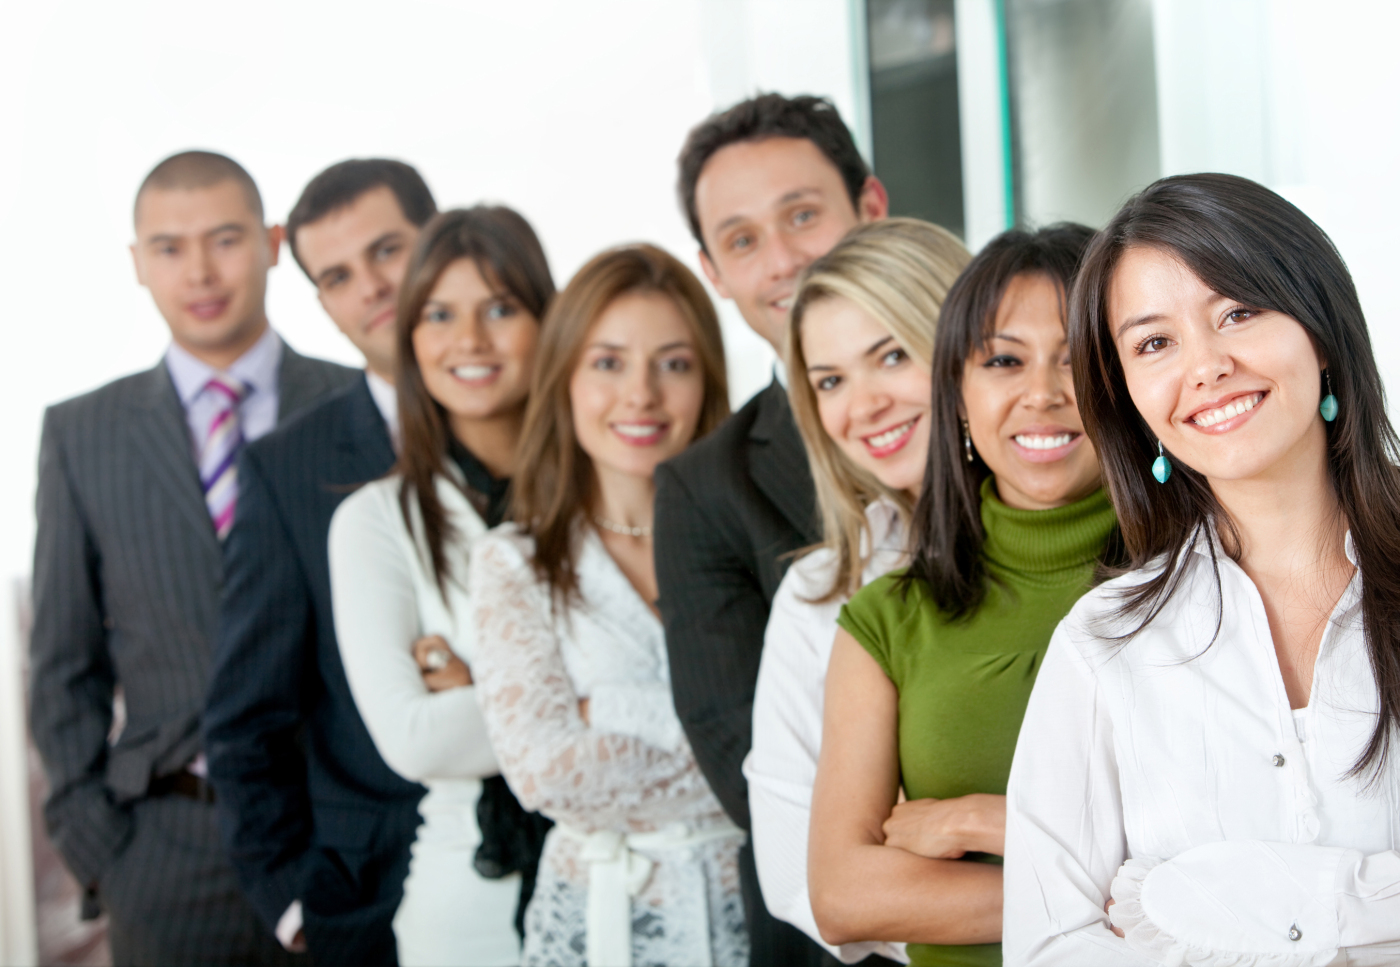 best jobs for hispanic network magazine the job market goes up and down and sometimes it can be difficult to predict which fields are going to do well and which will see little or no job growth